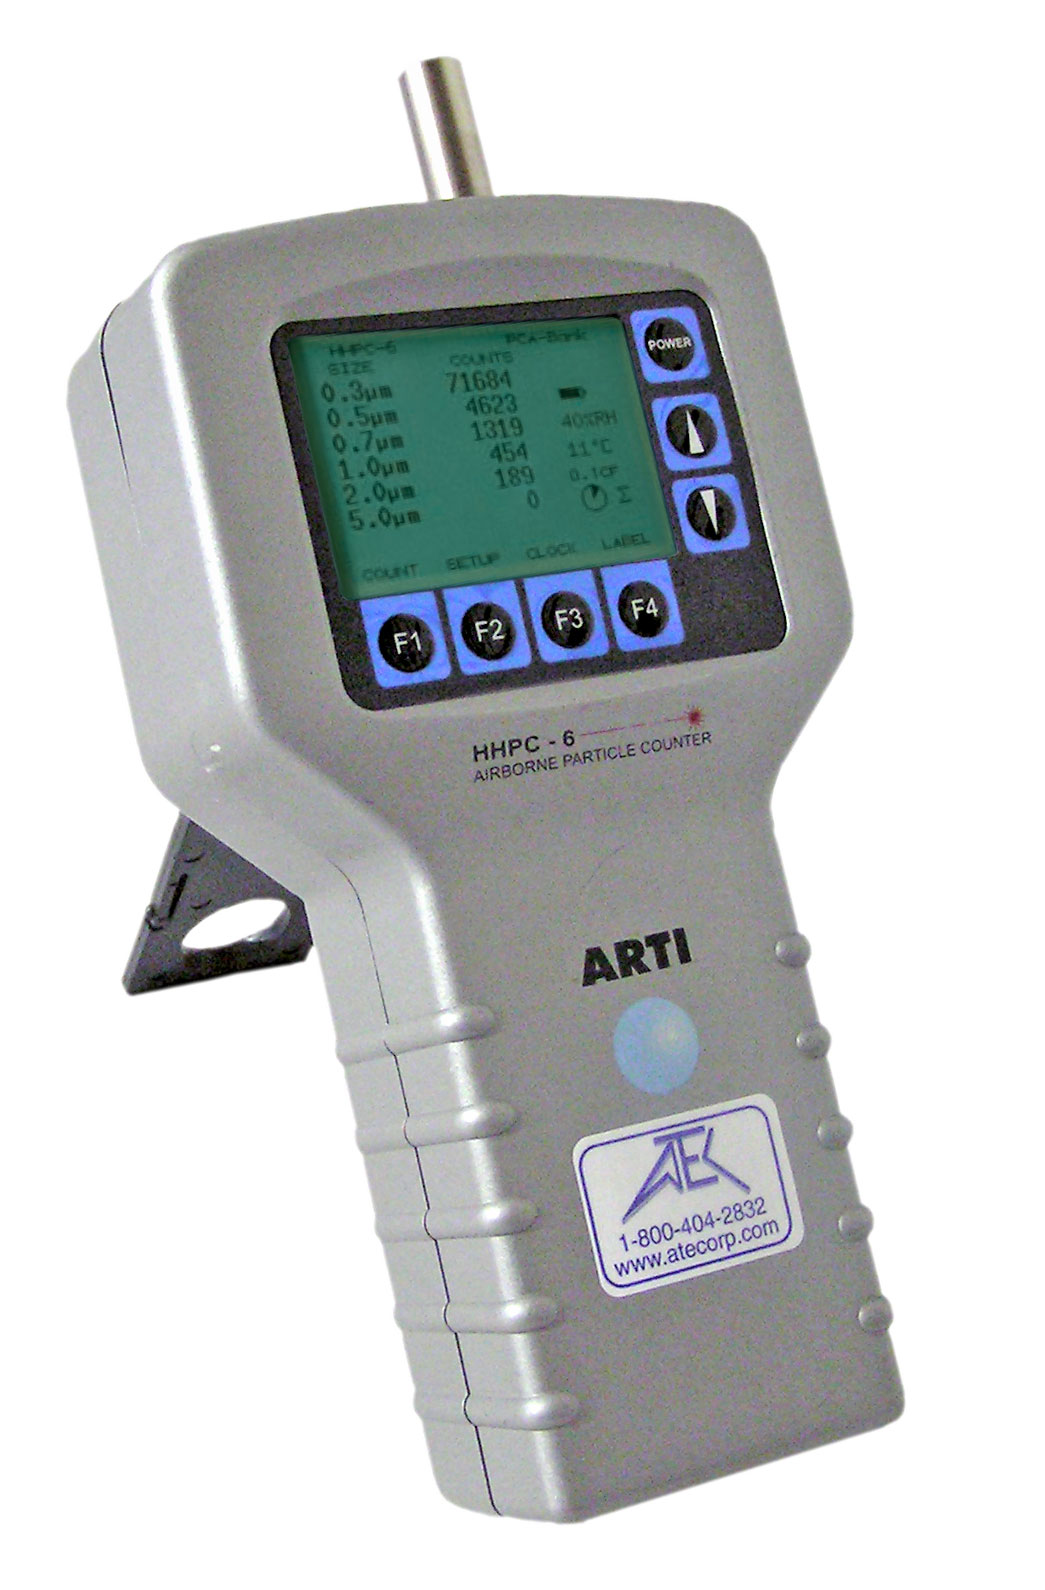 Rent ARTI/Met One HHPC-6 Mobile Particle Counter